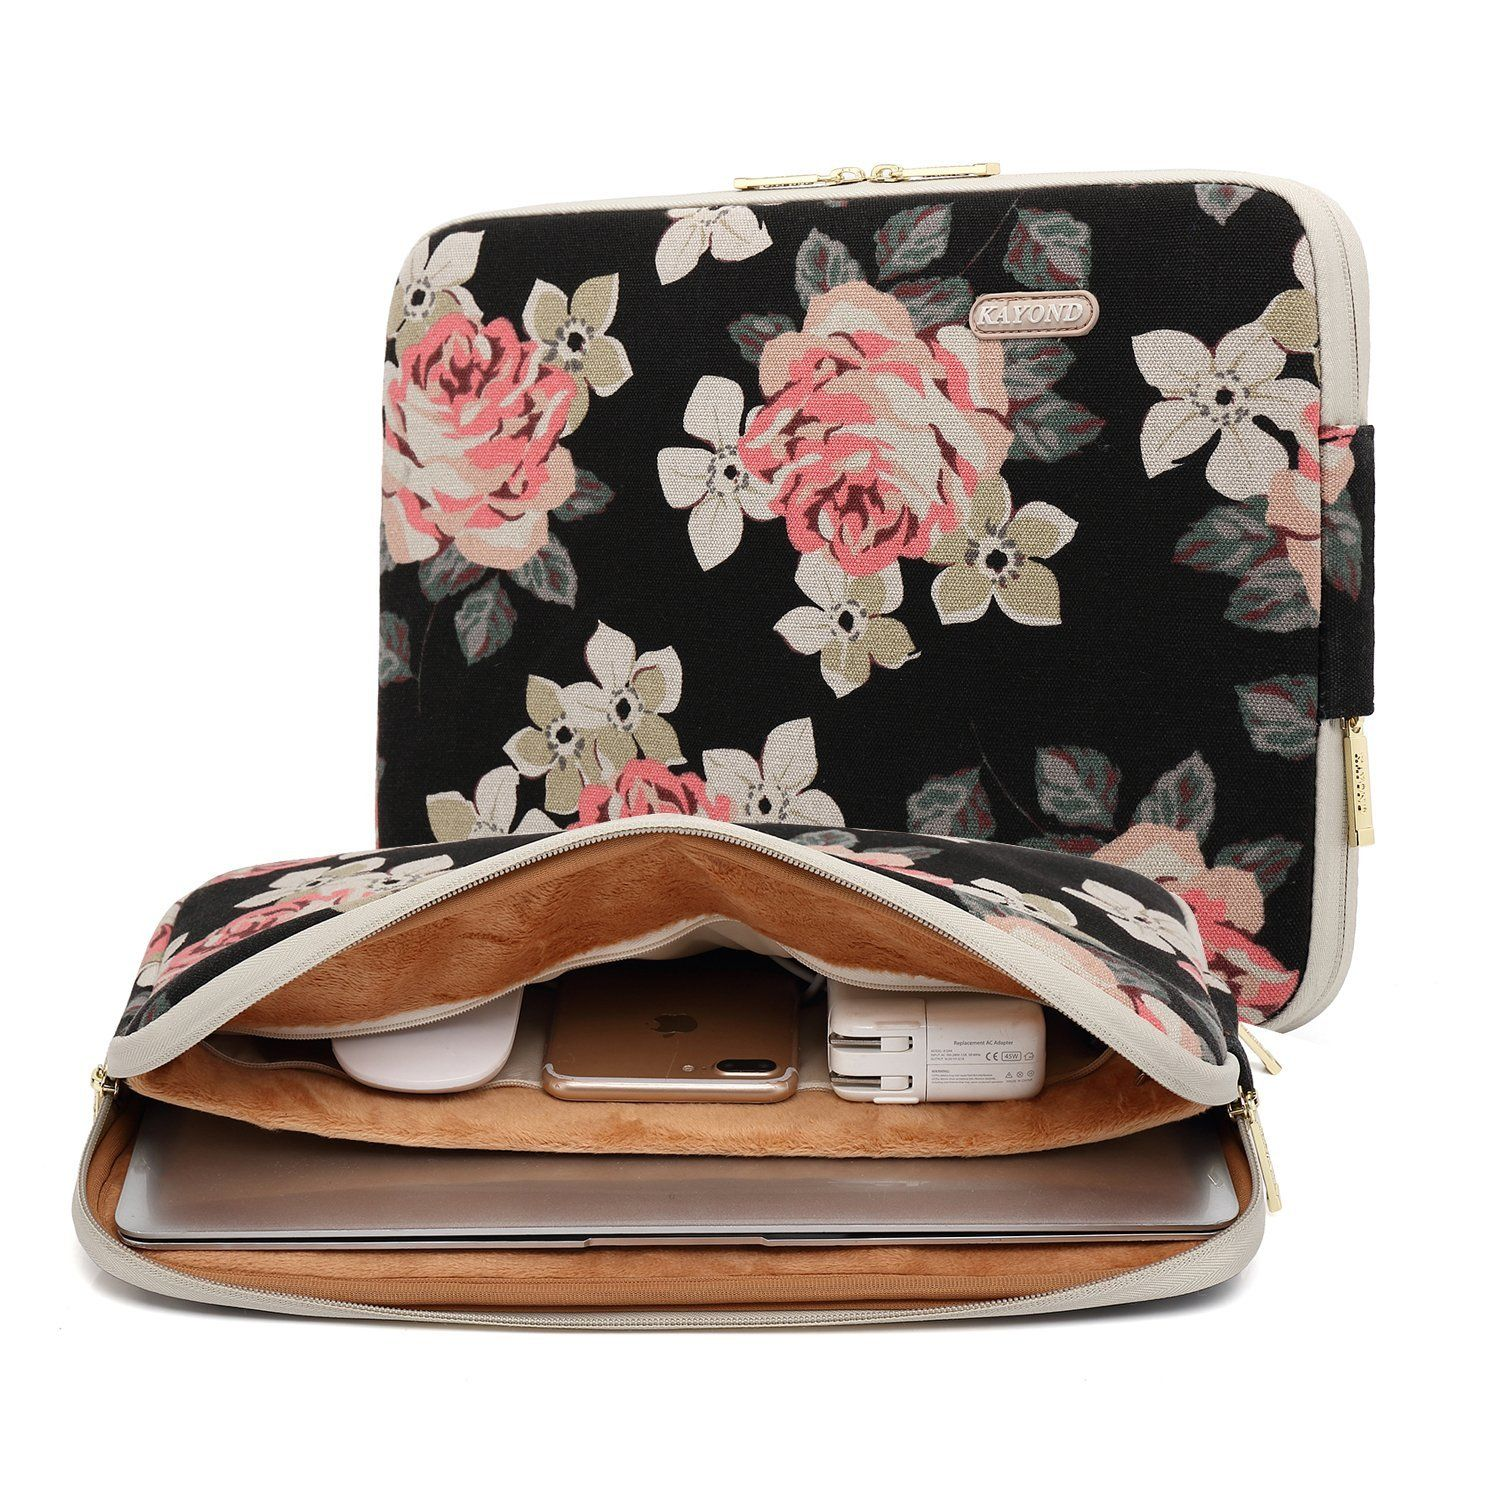 Women Floral Laptop Sleeve Bags Accessories For Macbook Pro Air Notebook 13 Inch